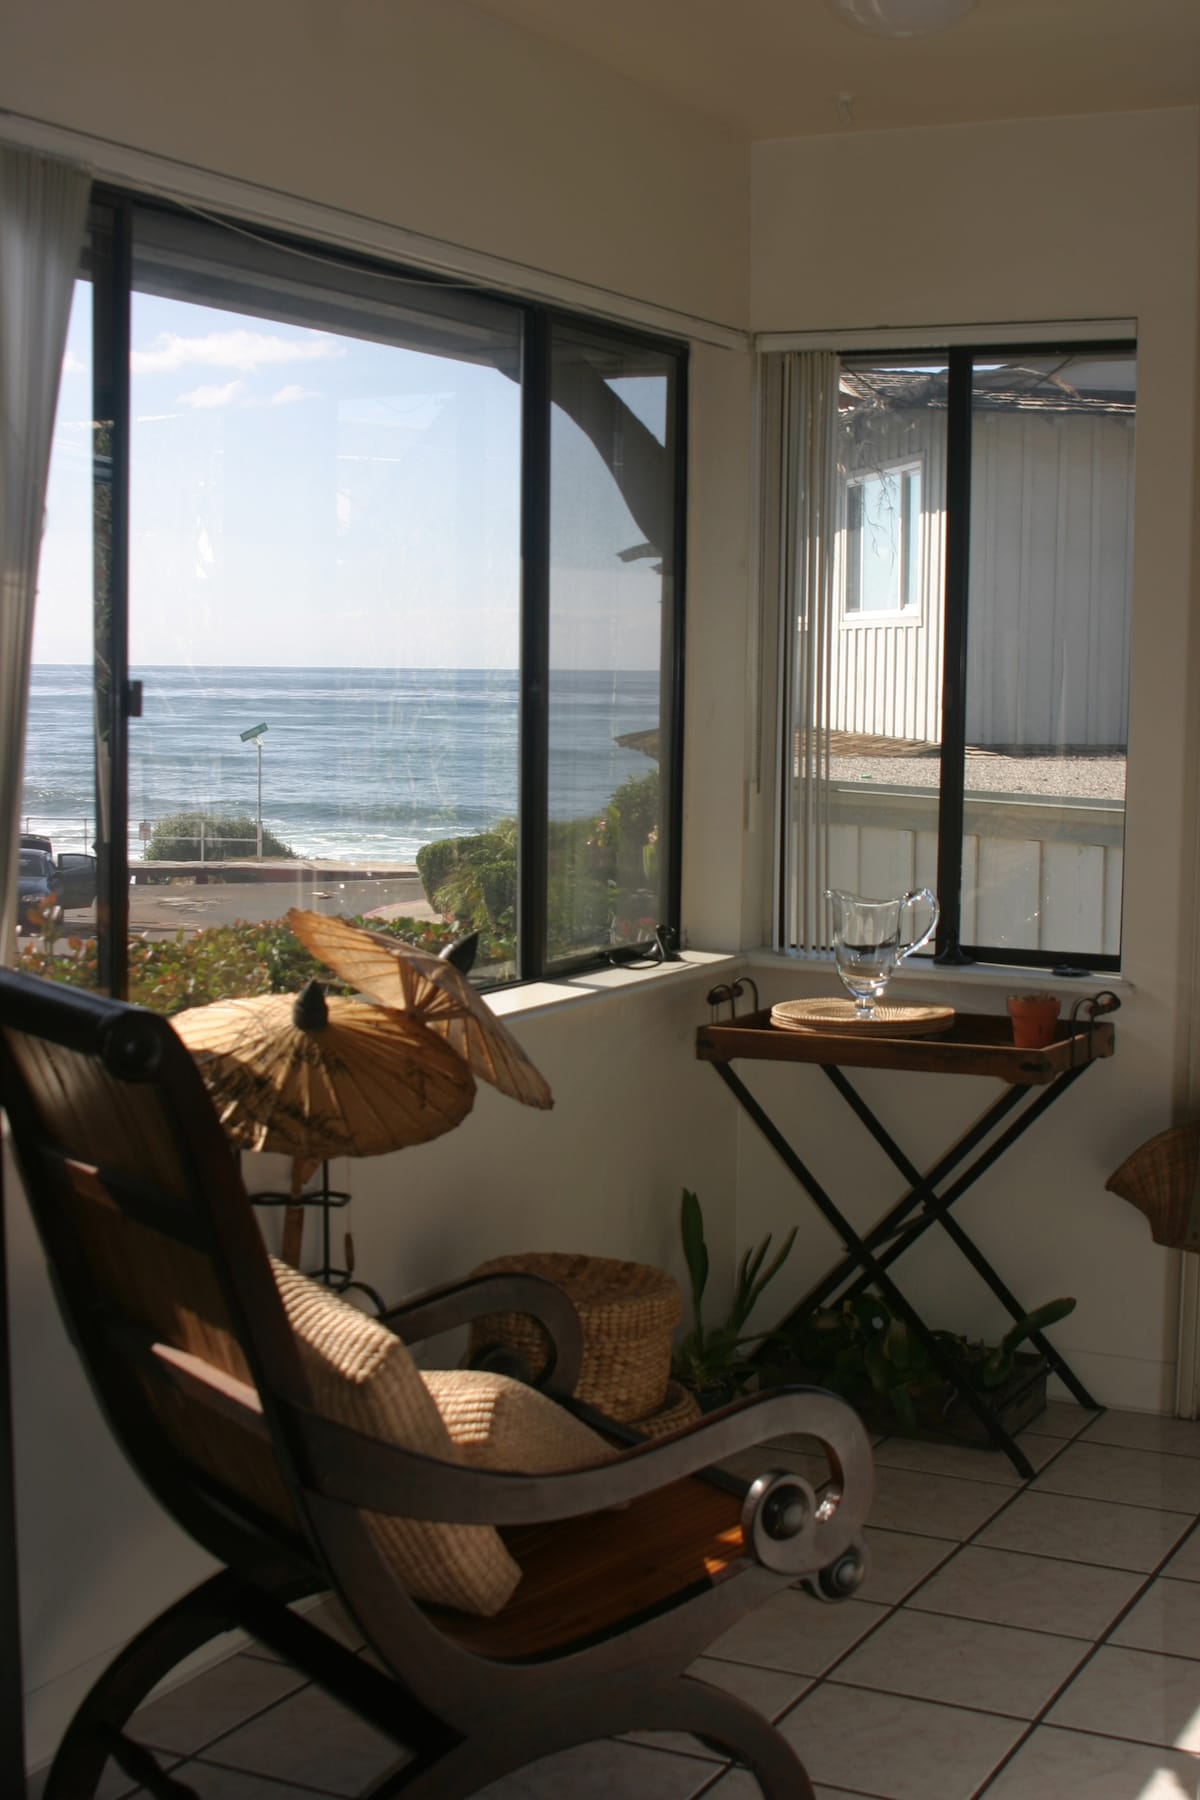 This is an old picture of the decor, but it shows the ocean view from the kitchen and living room